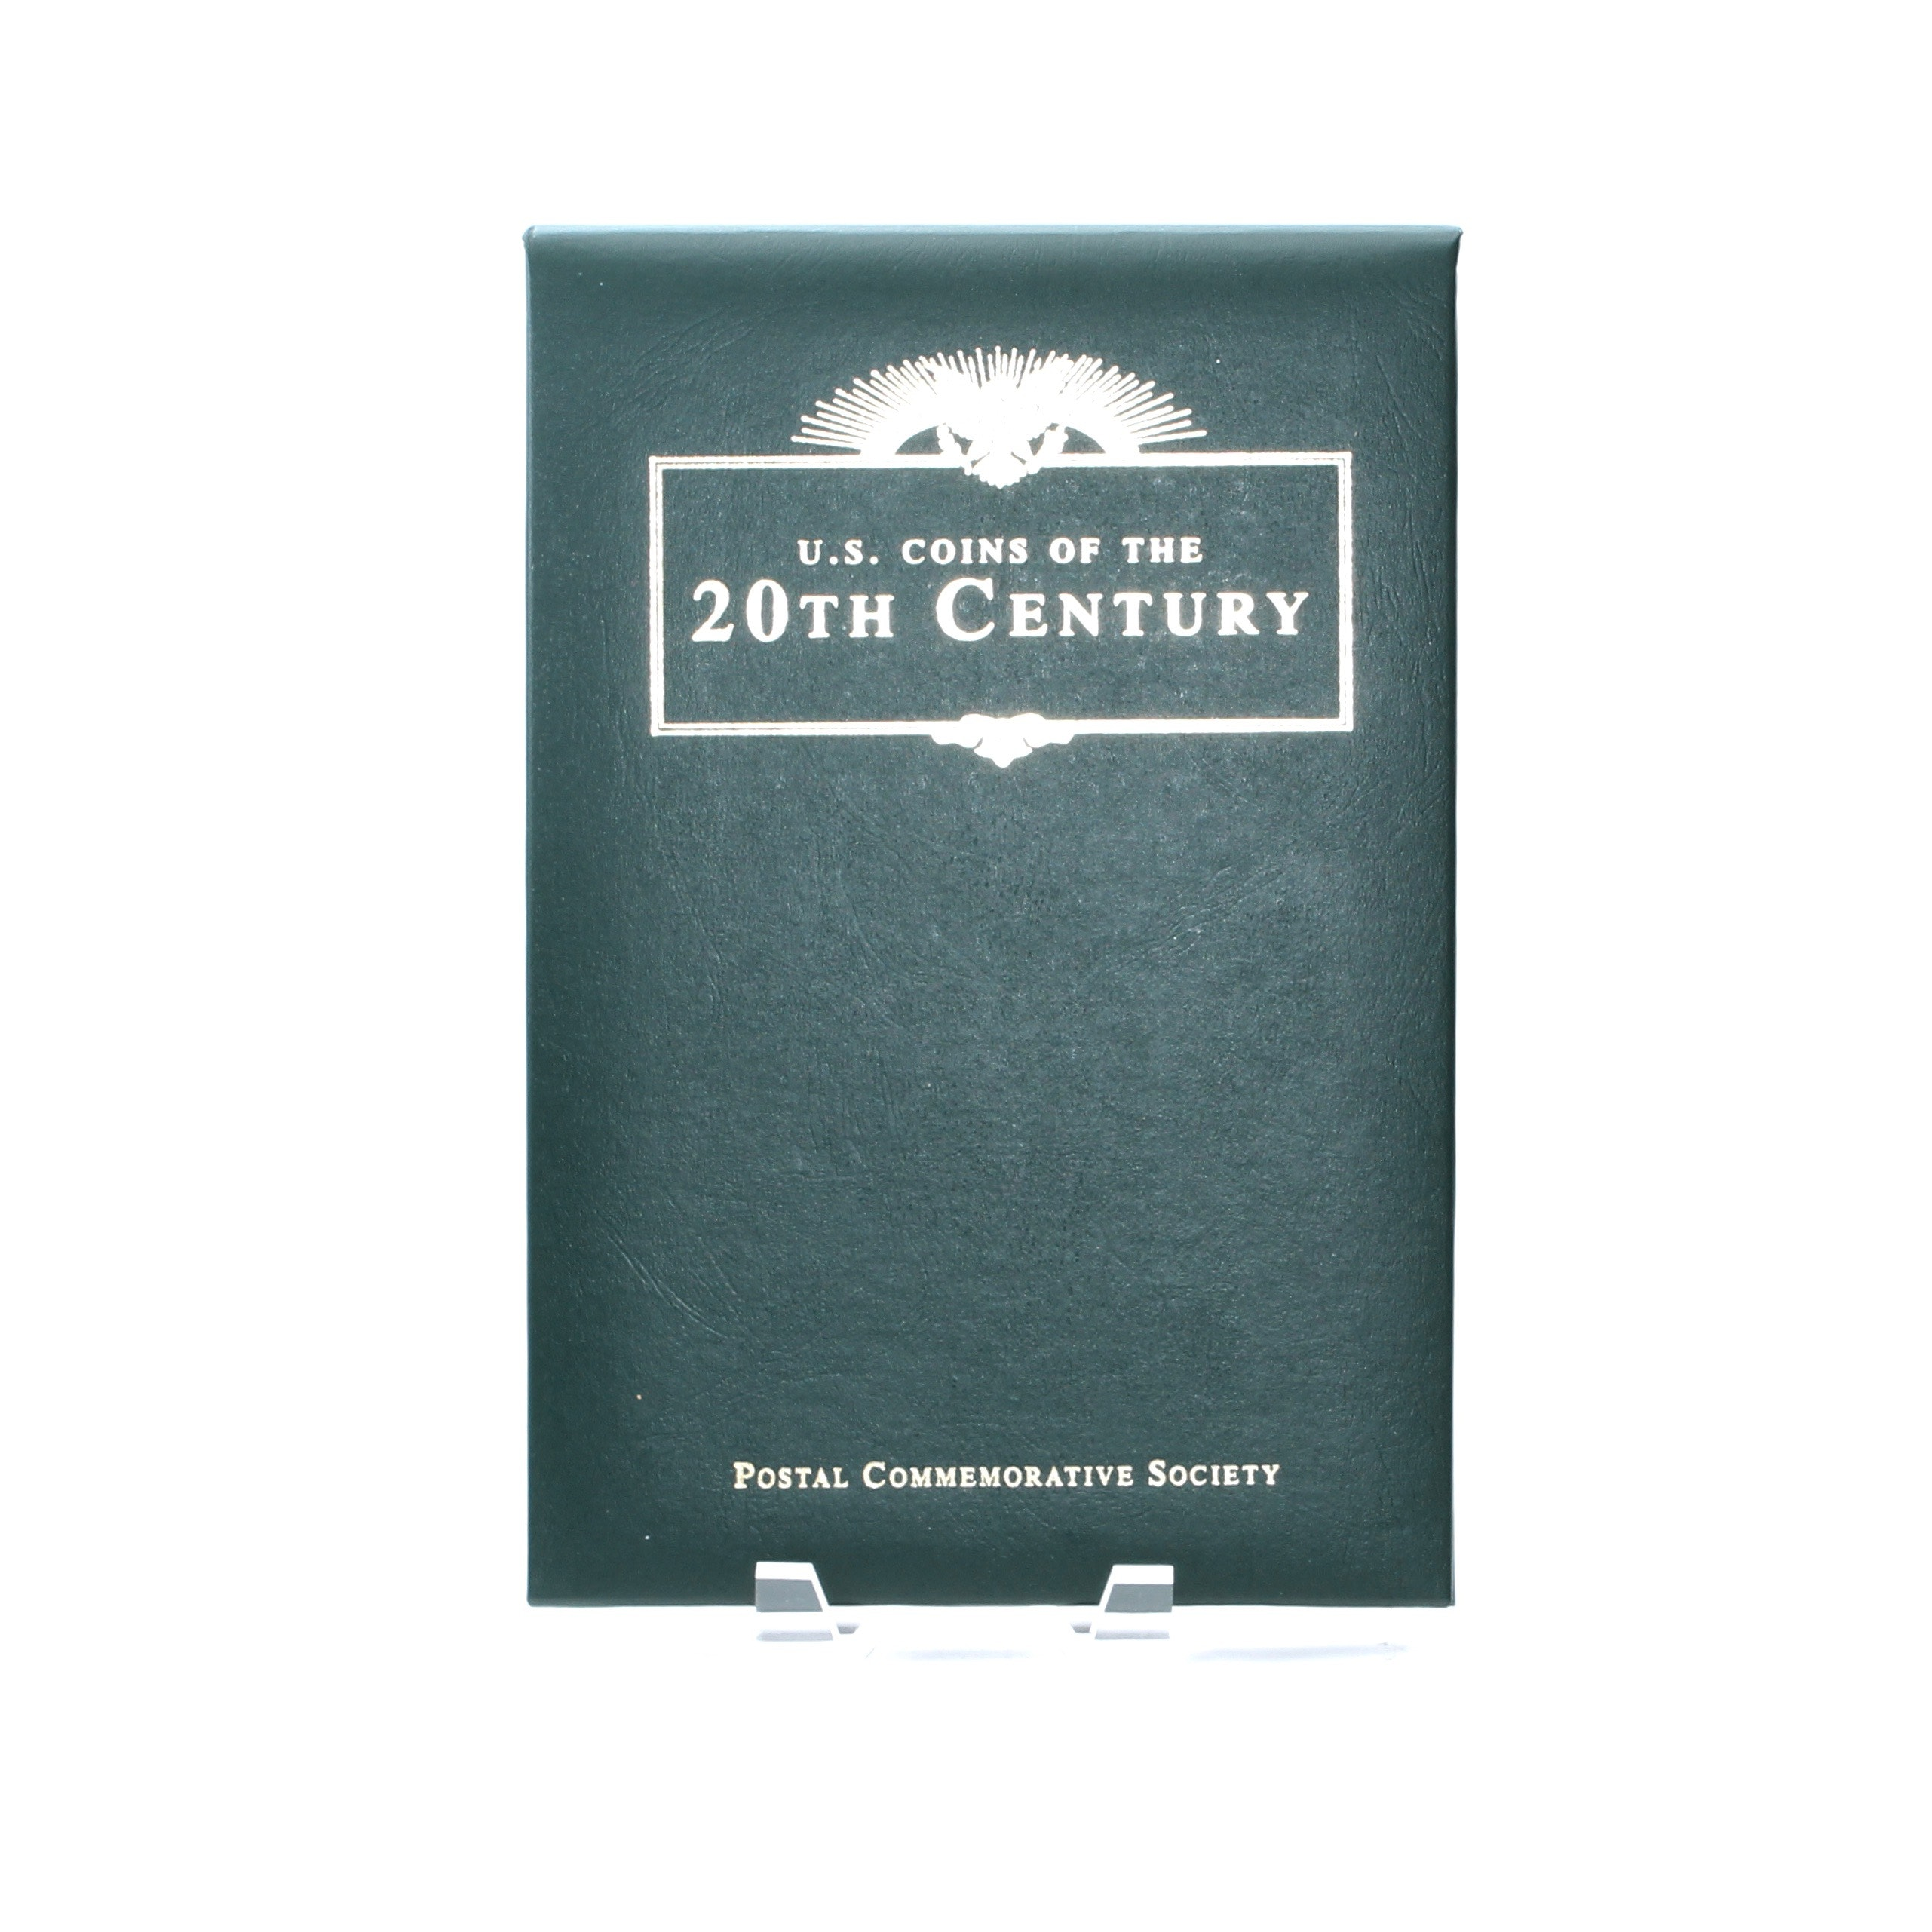 U.S. Coins of the 20th Century Collection